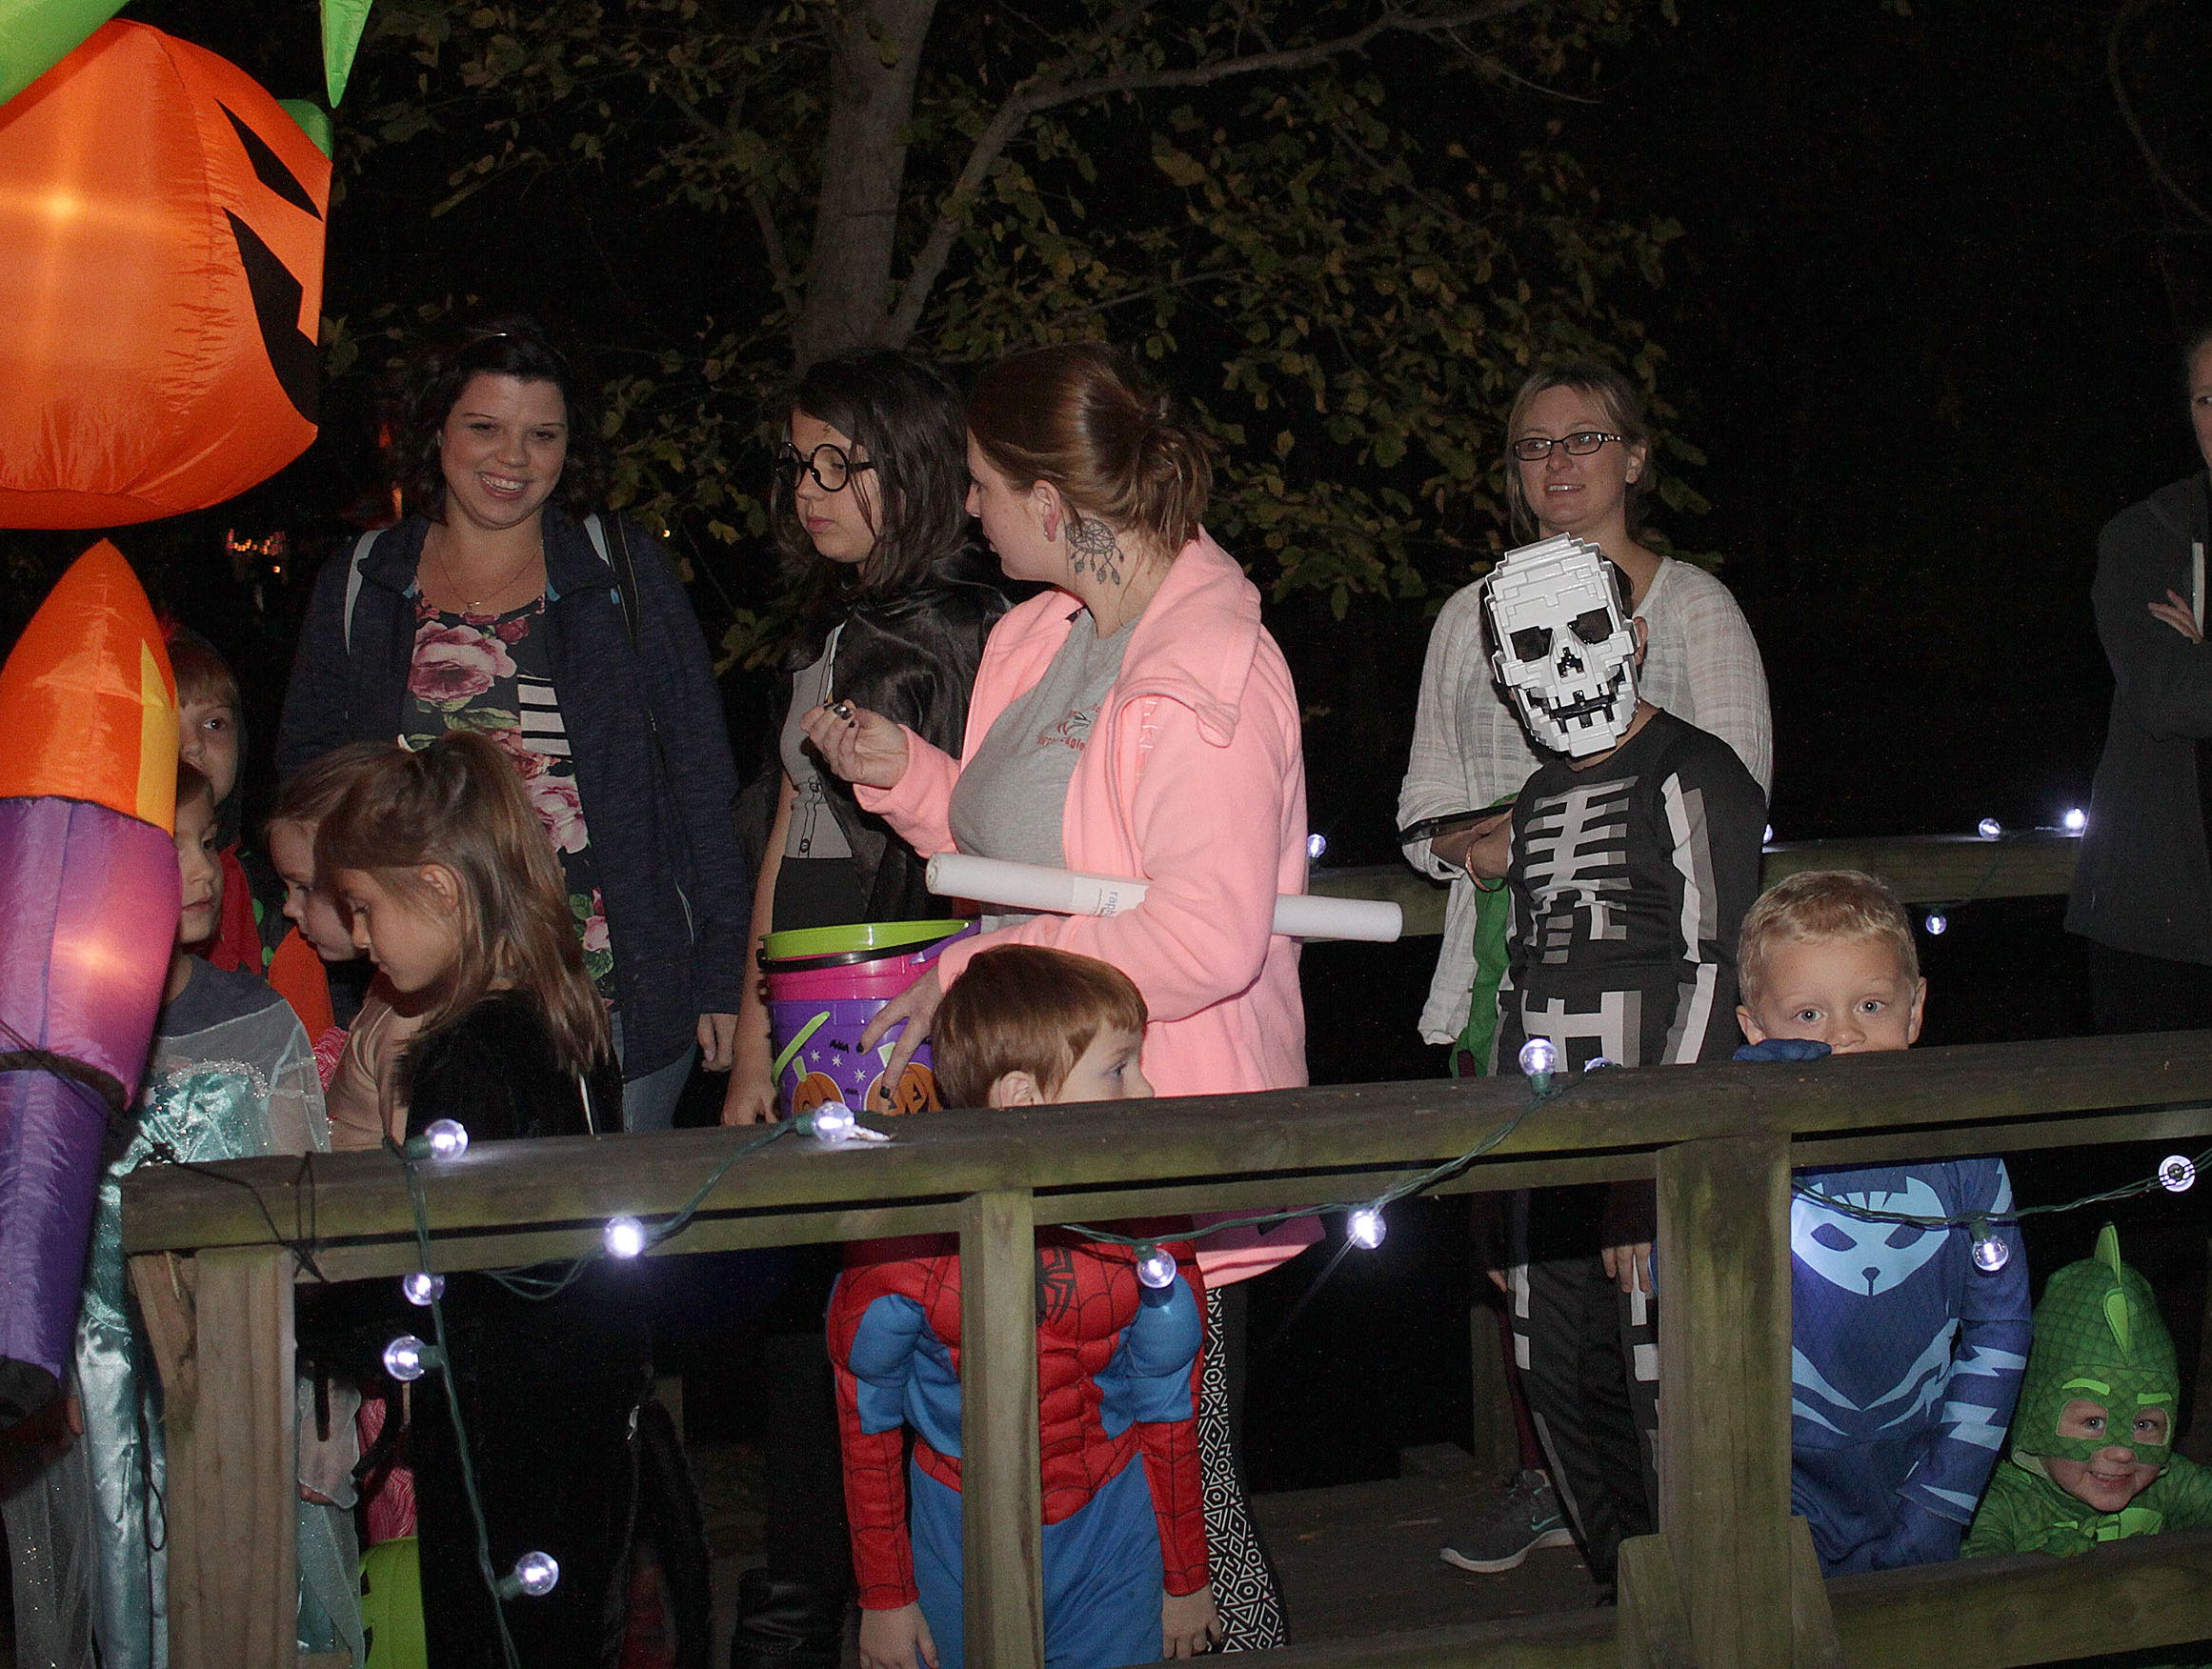 Thousands came out for Halloween at Drakes Creek Park in Hendersonville, TN on Tuesday, October 30, 2018.